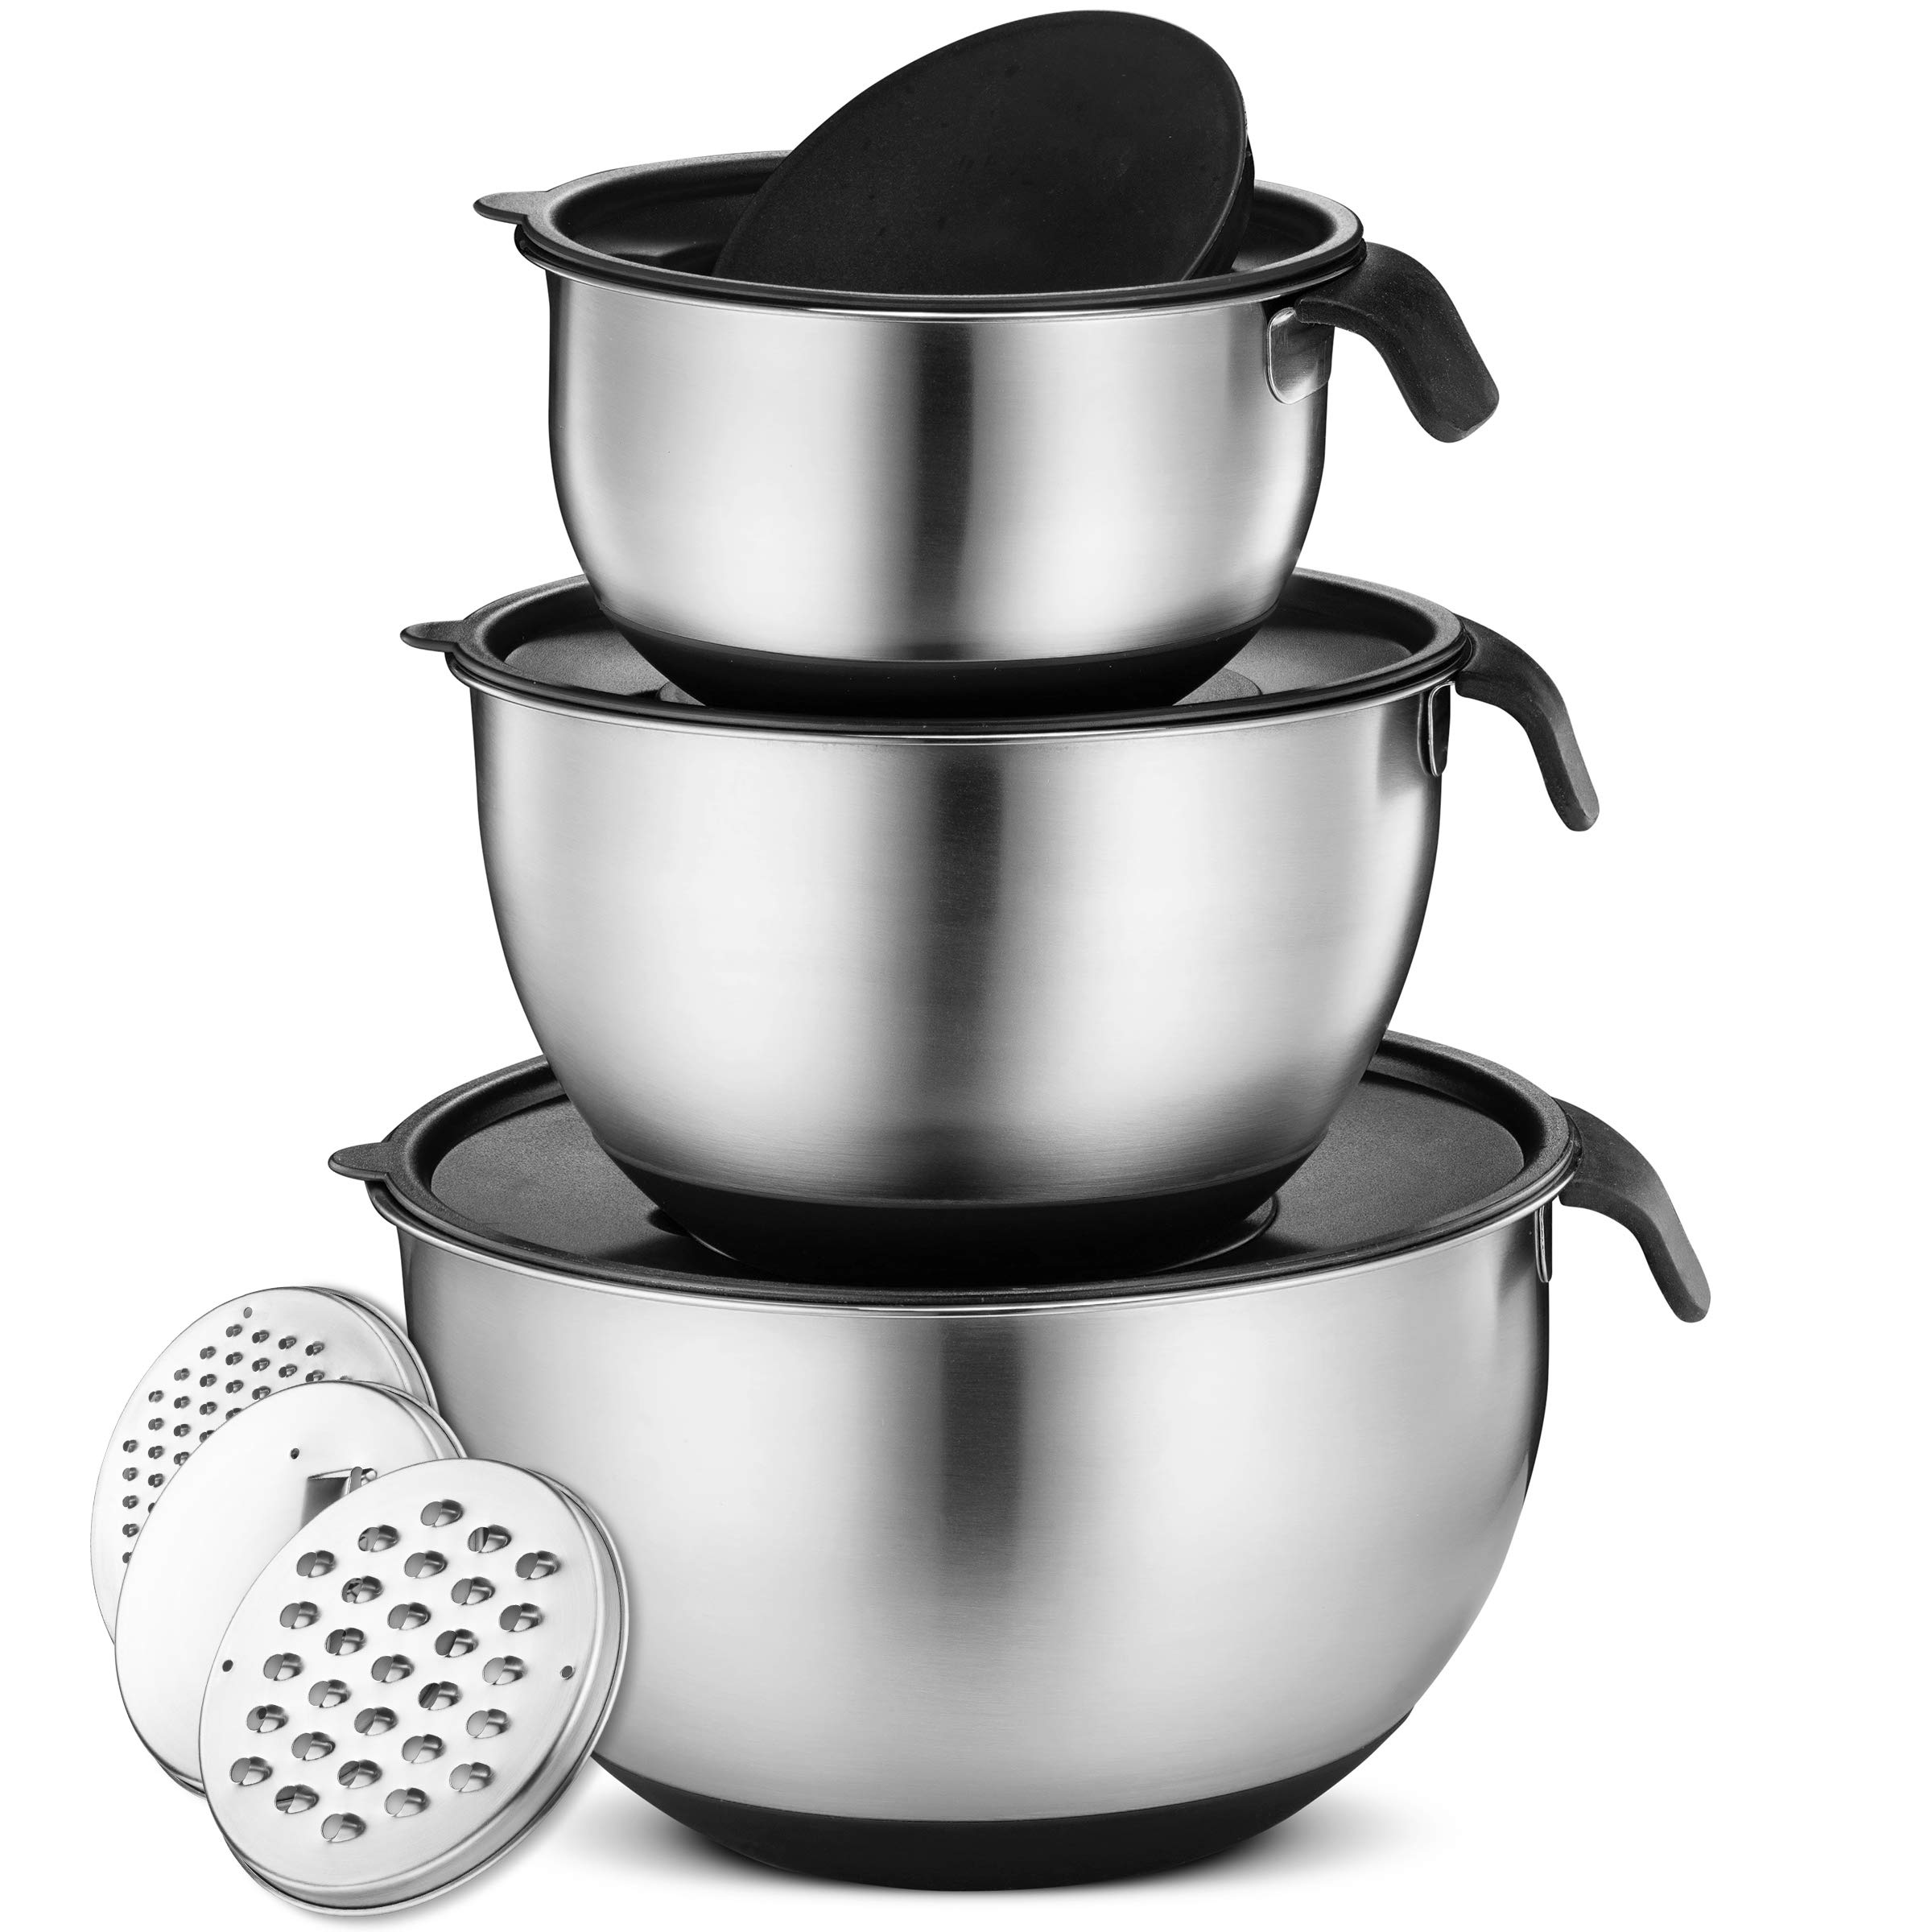 Klee Stainless Steel Mixing Bowl Set of 3 with Grater Attachments - Nesting Mixing Bowls with Handle and Pour Spout - Mixing Bowls with Airtight Lids - Non Slip Mixing Bowls with Silicone Base, Black